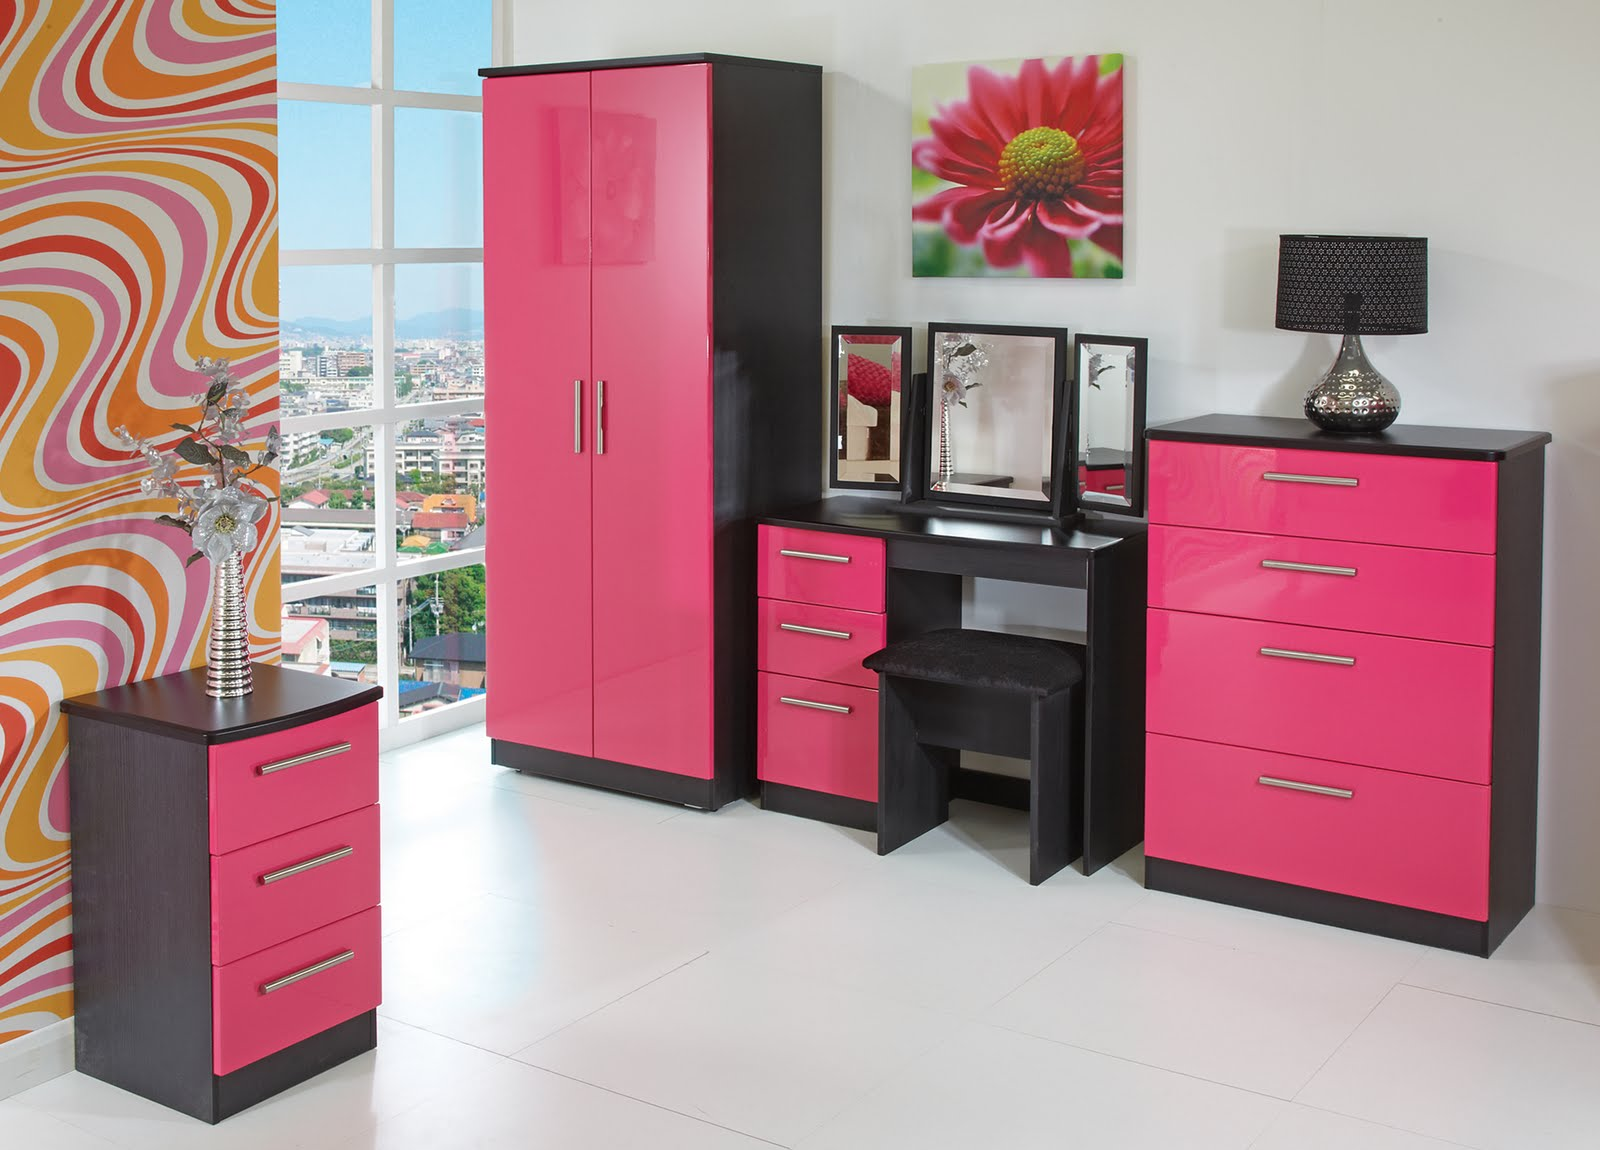 Home Furnishings from Furniture Store 247: Pink High Gloss Bedroom ...